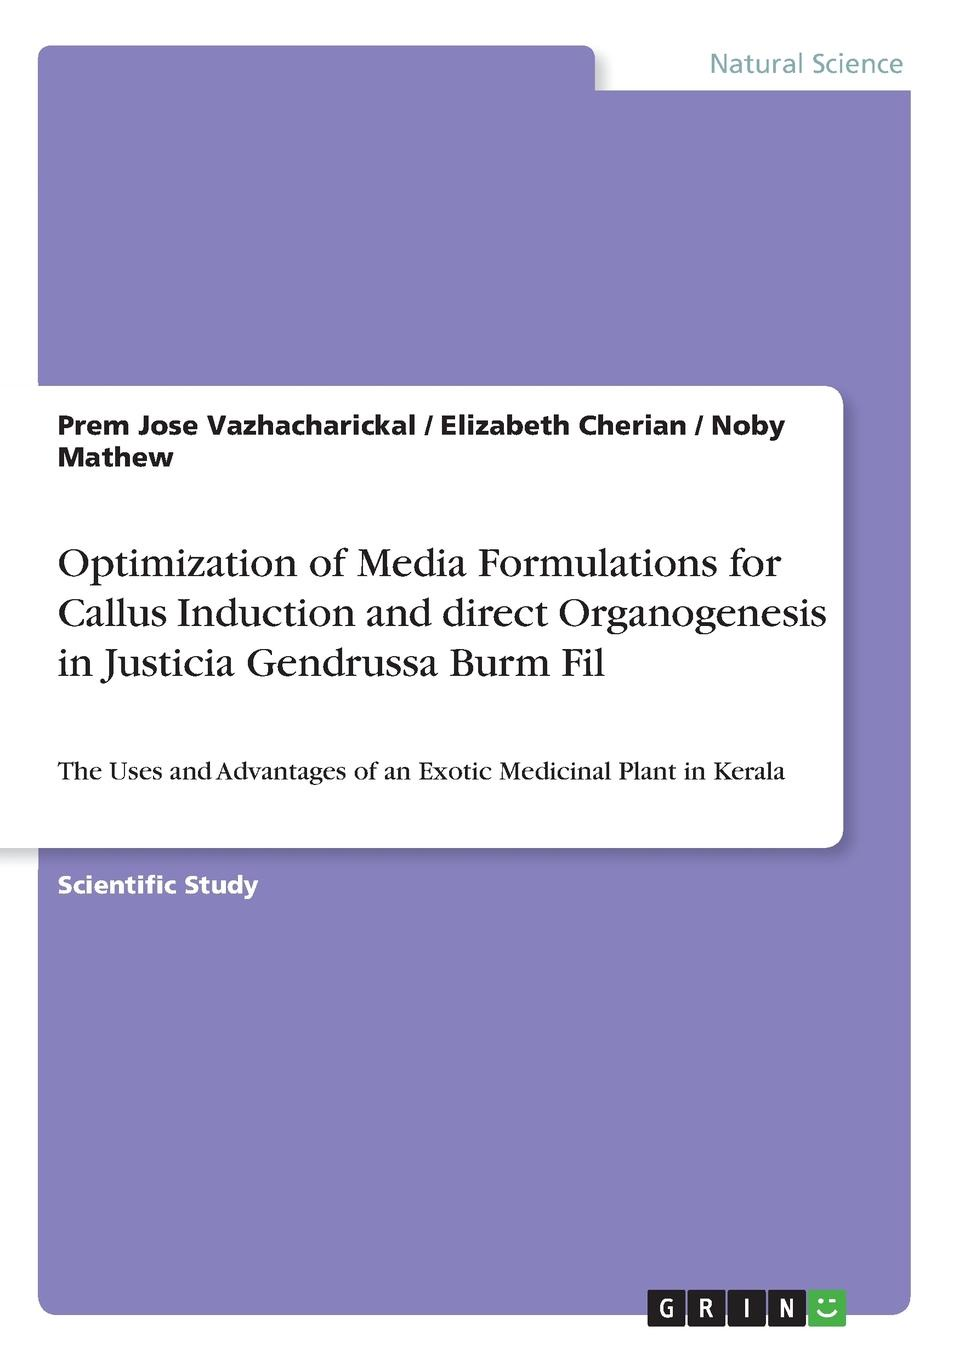 Prem Jose Vazhacharickal, Elizabeth Cherian, Noby Mathew Optimization of Media Formulations for Callus Induction and direct Organogenesis in Justicia Gendrussa Burm Fil недорго, оригинальная цена